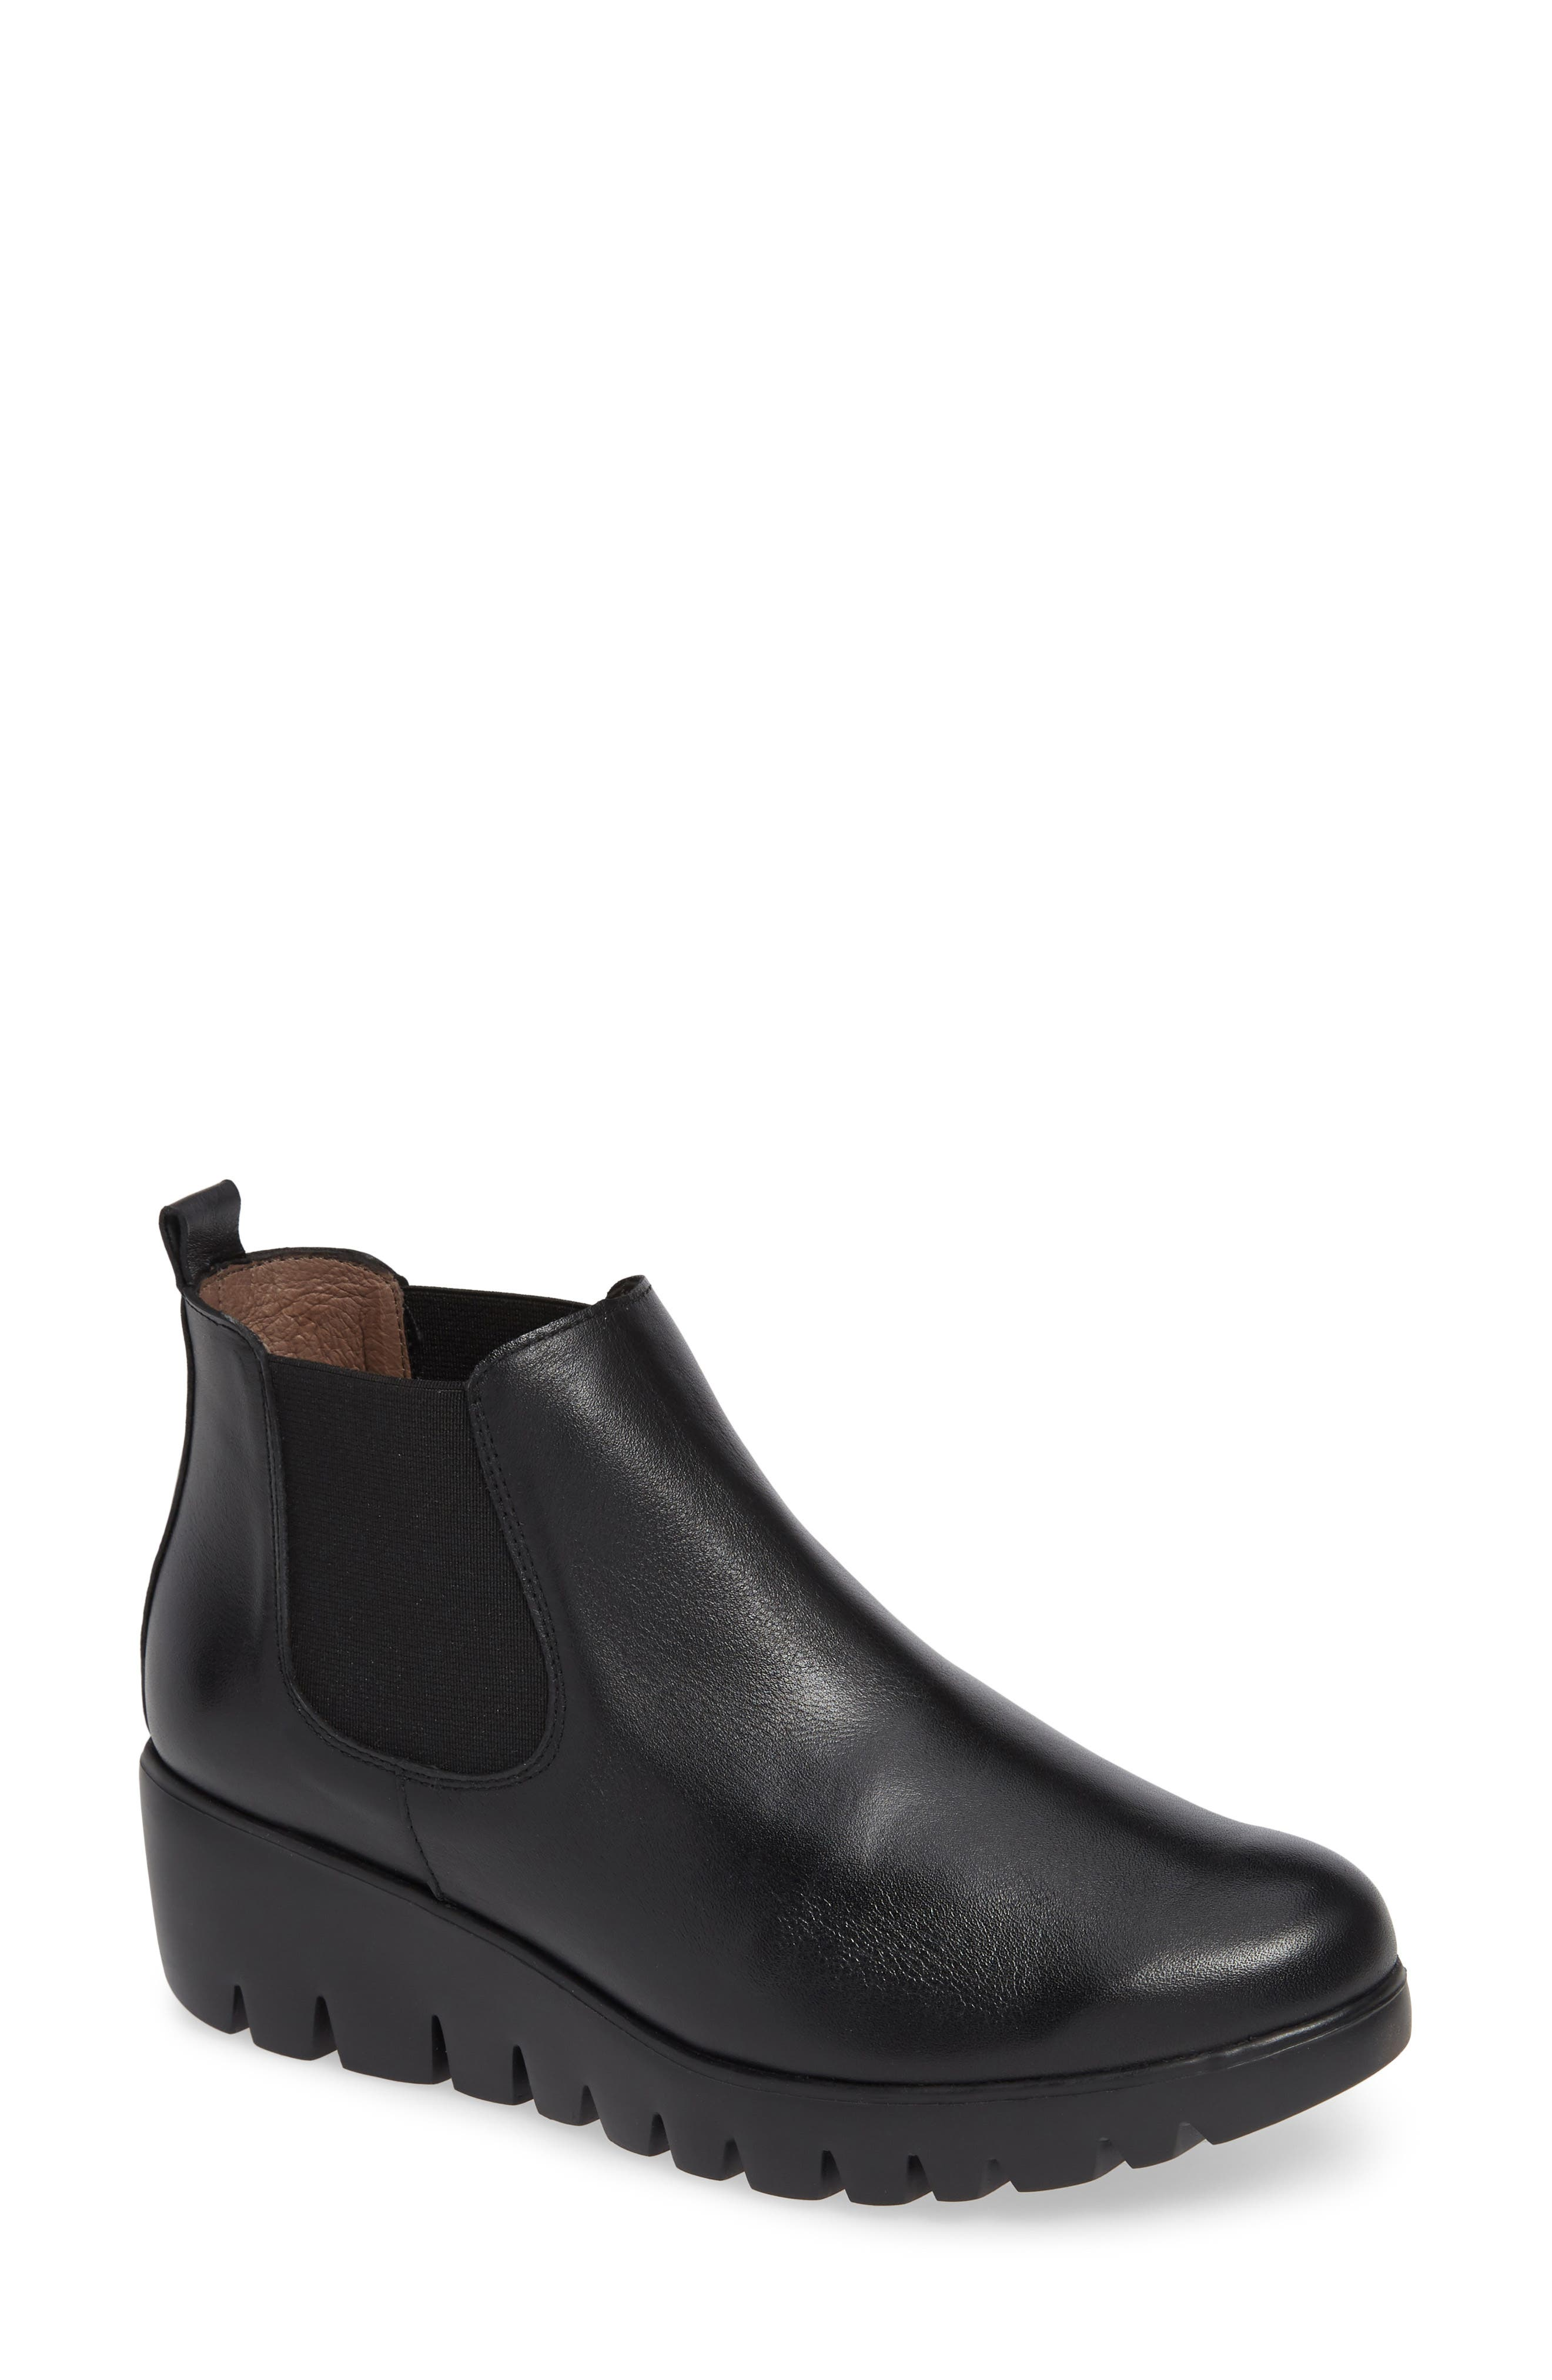 Slip-On Chelsea Boot,                             Main thumbnail 1, color,                             BLACK SMOOTH LEATHER